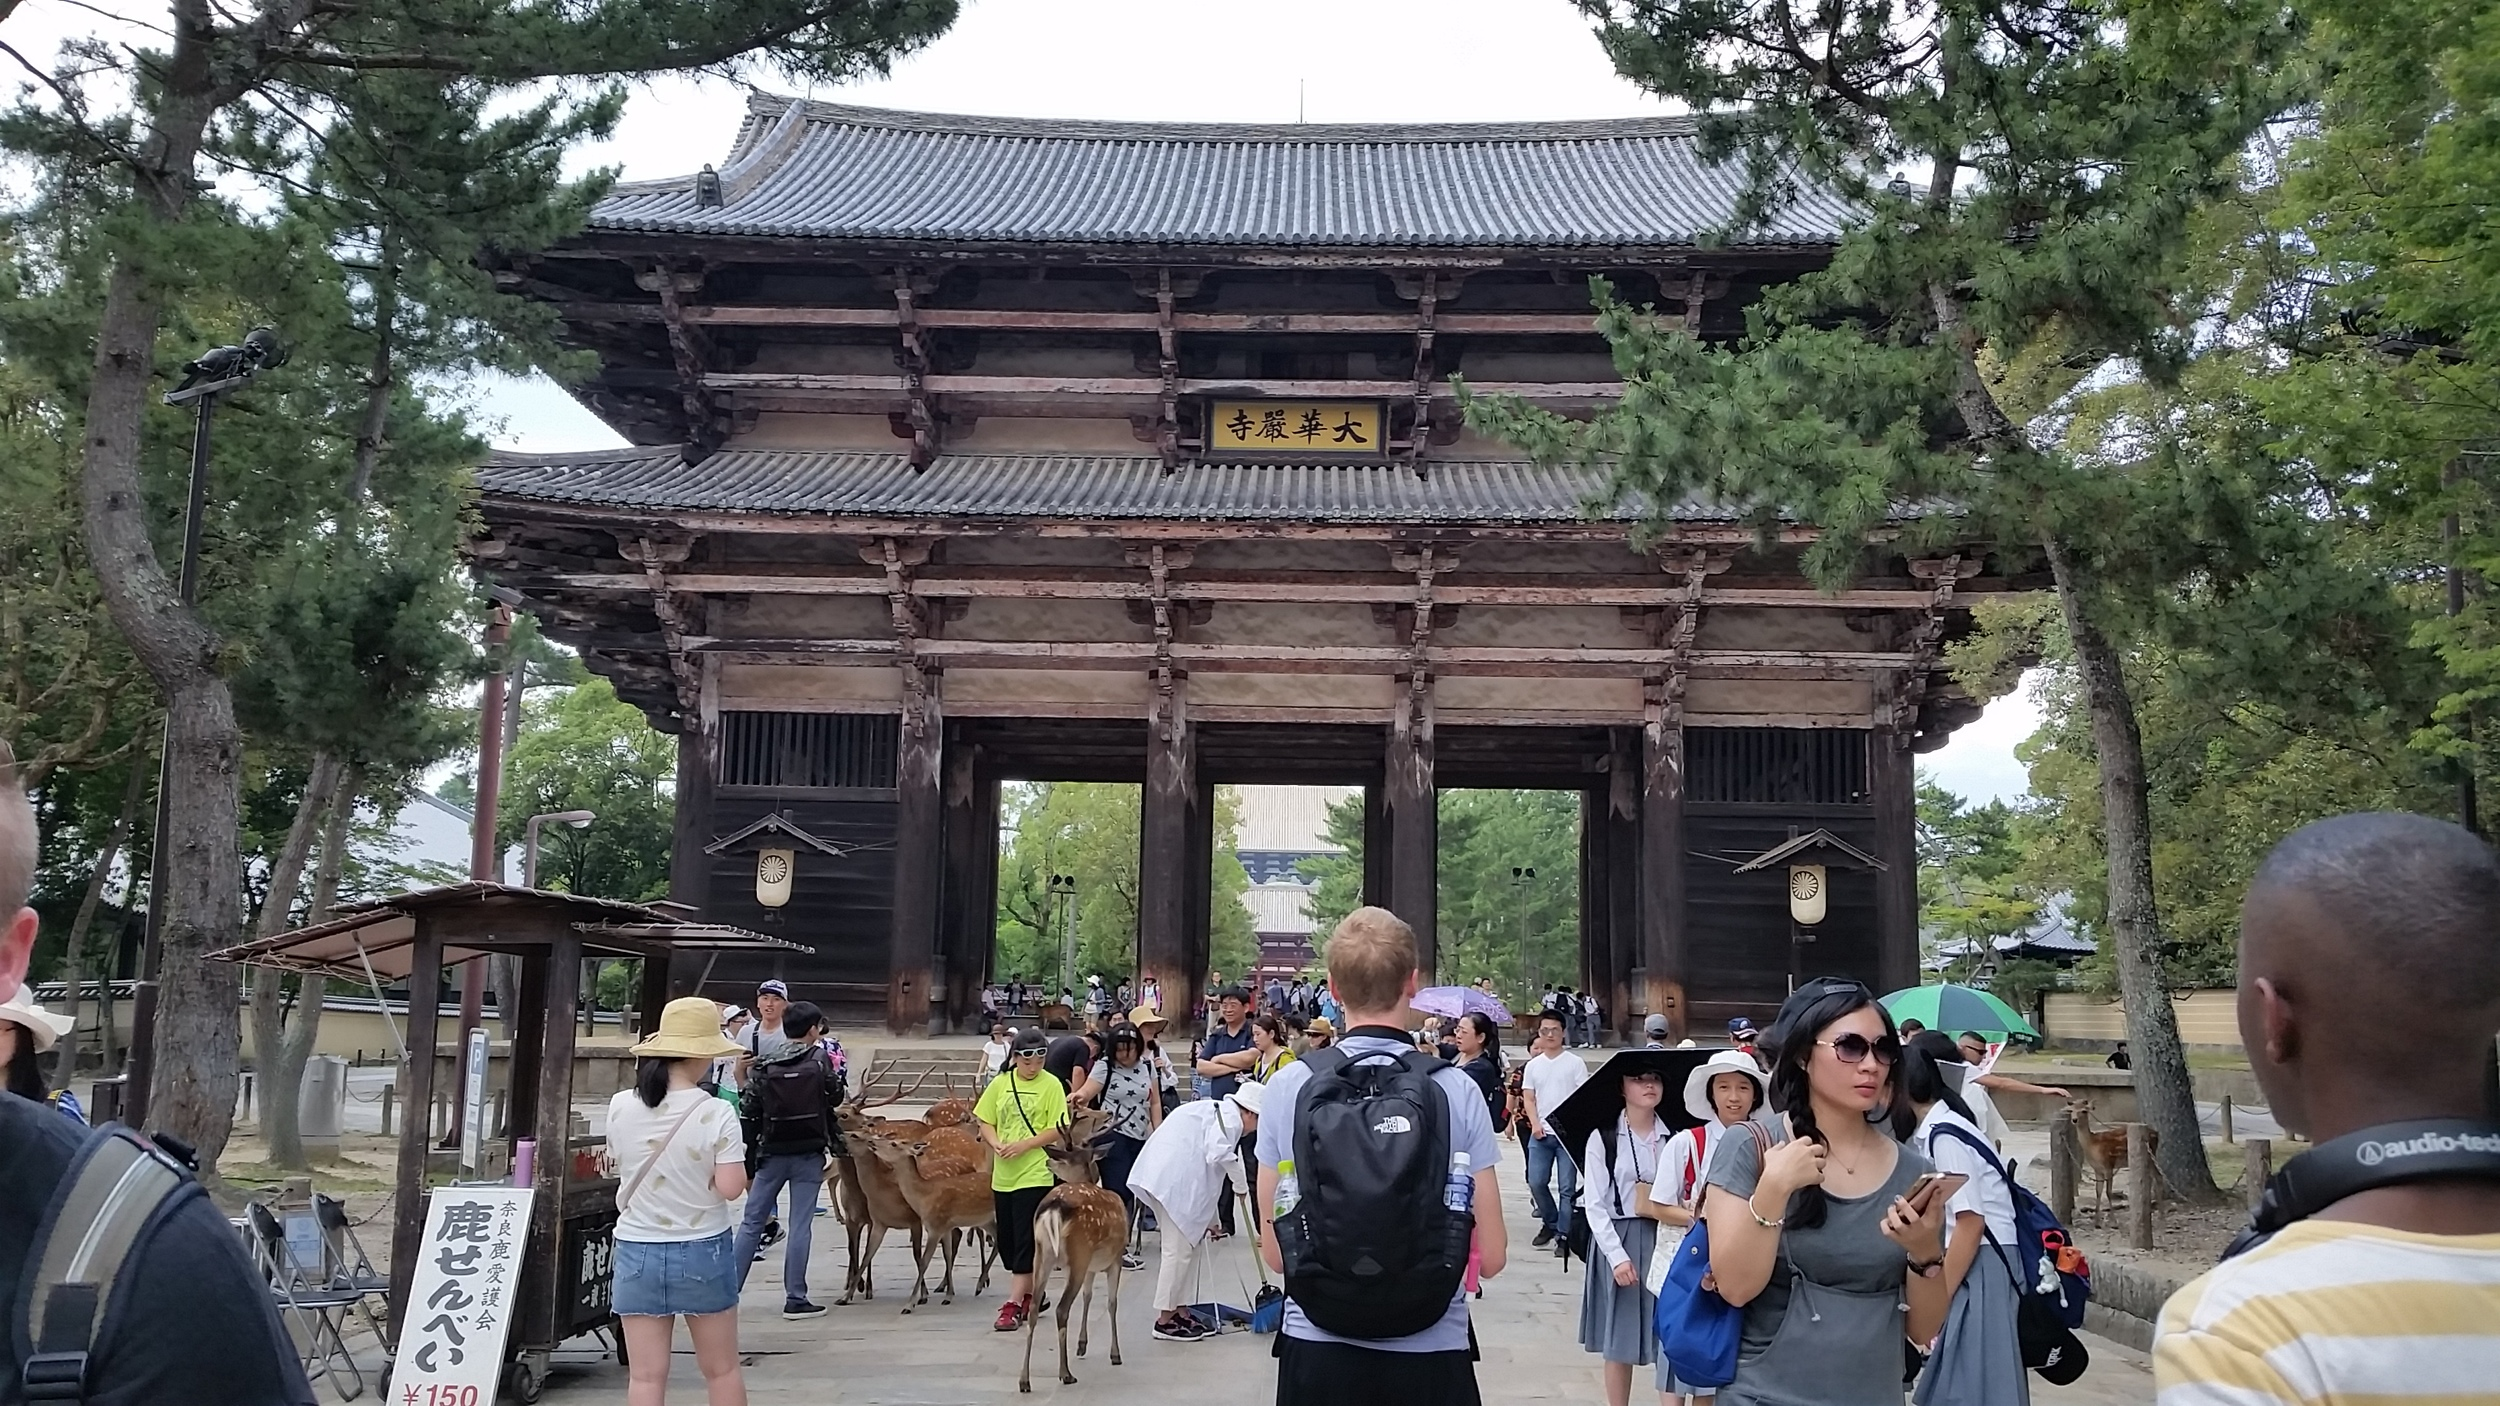 Heading to Toudaiji Temple in Nara and seeing many deer along the way